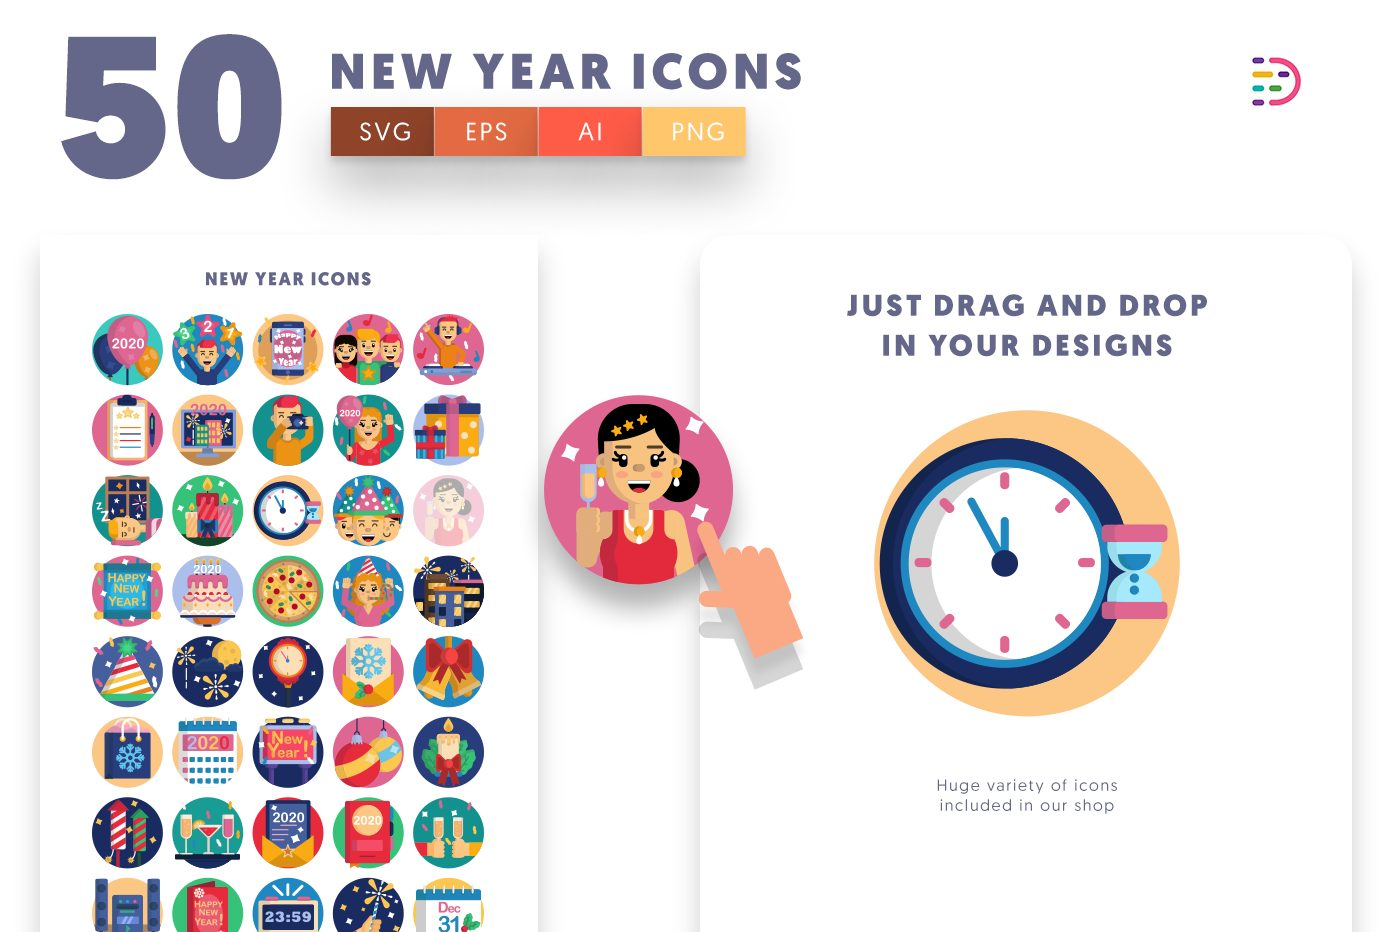 Drag and drop vector 50 New Year Icons